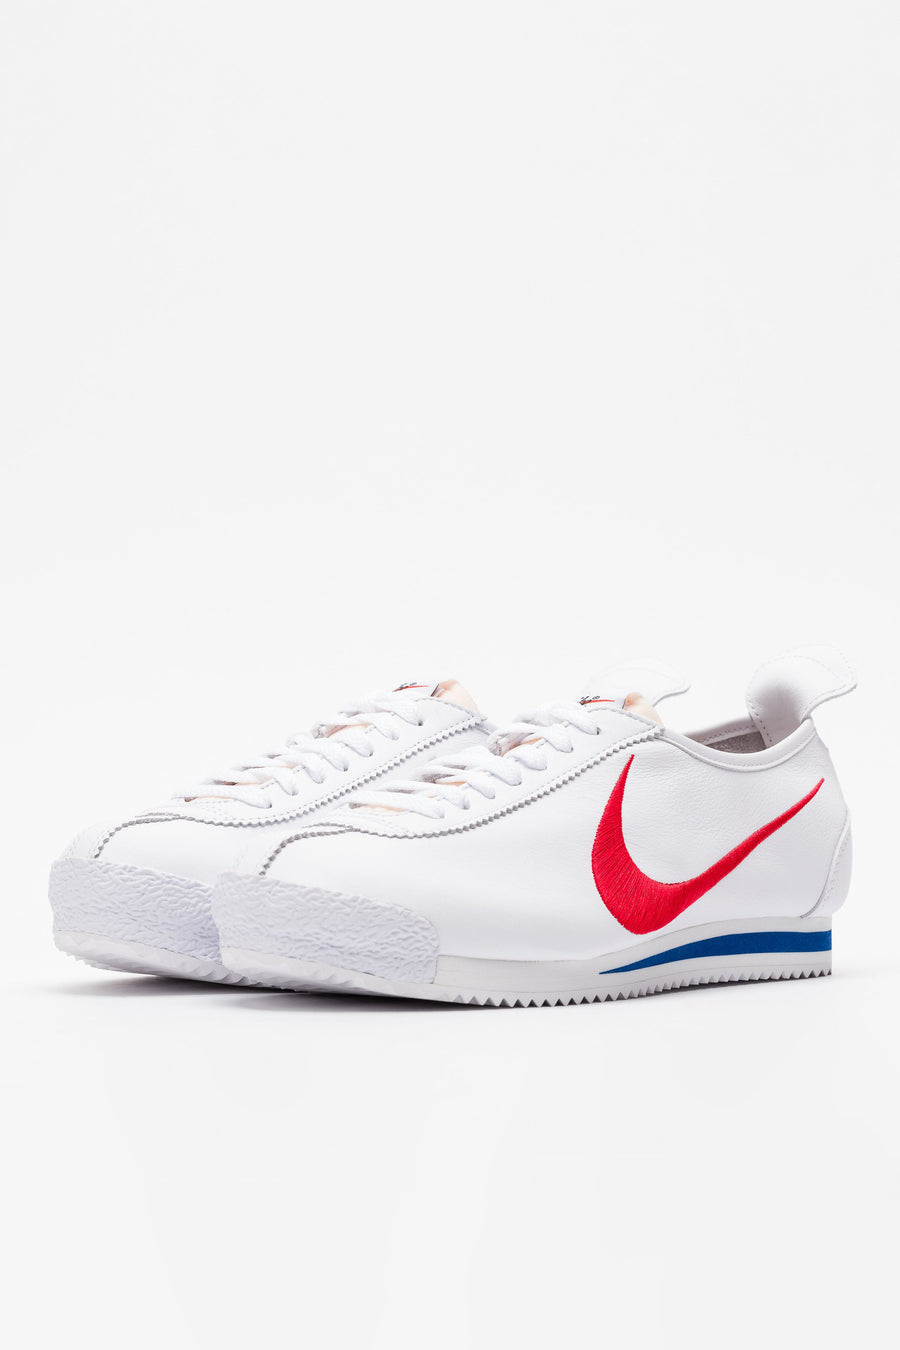 cheap for discount 71c17 99c32 Cortez 72 SD in White/Red/Royal